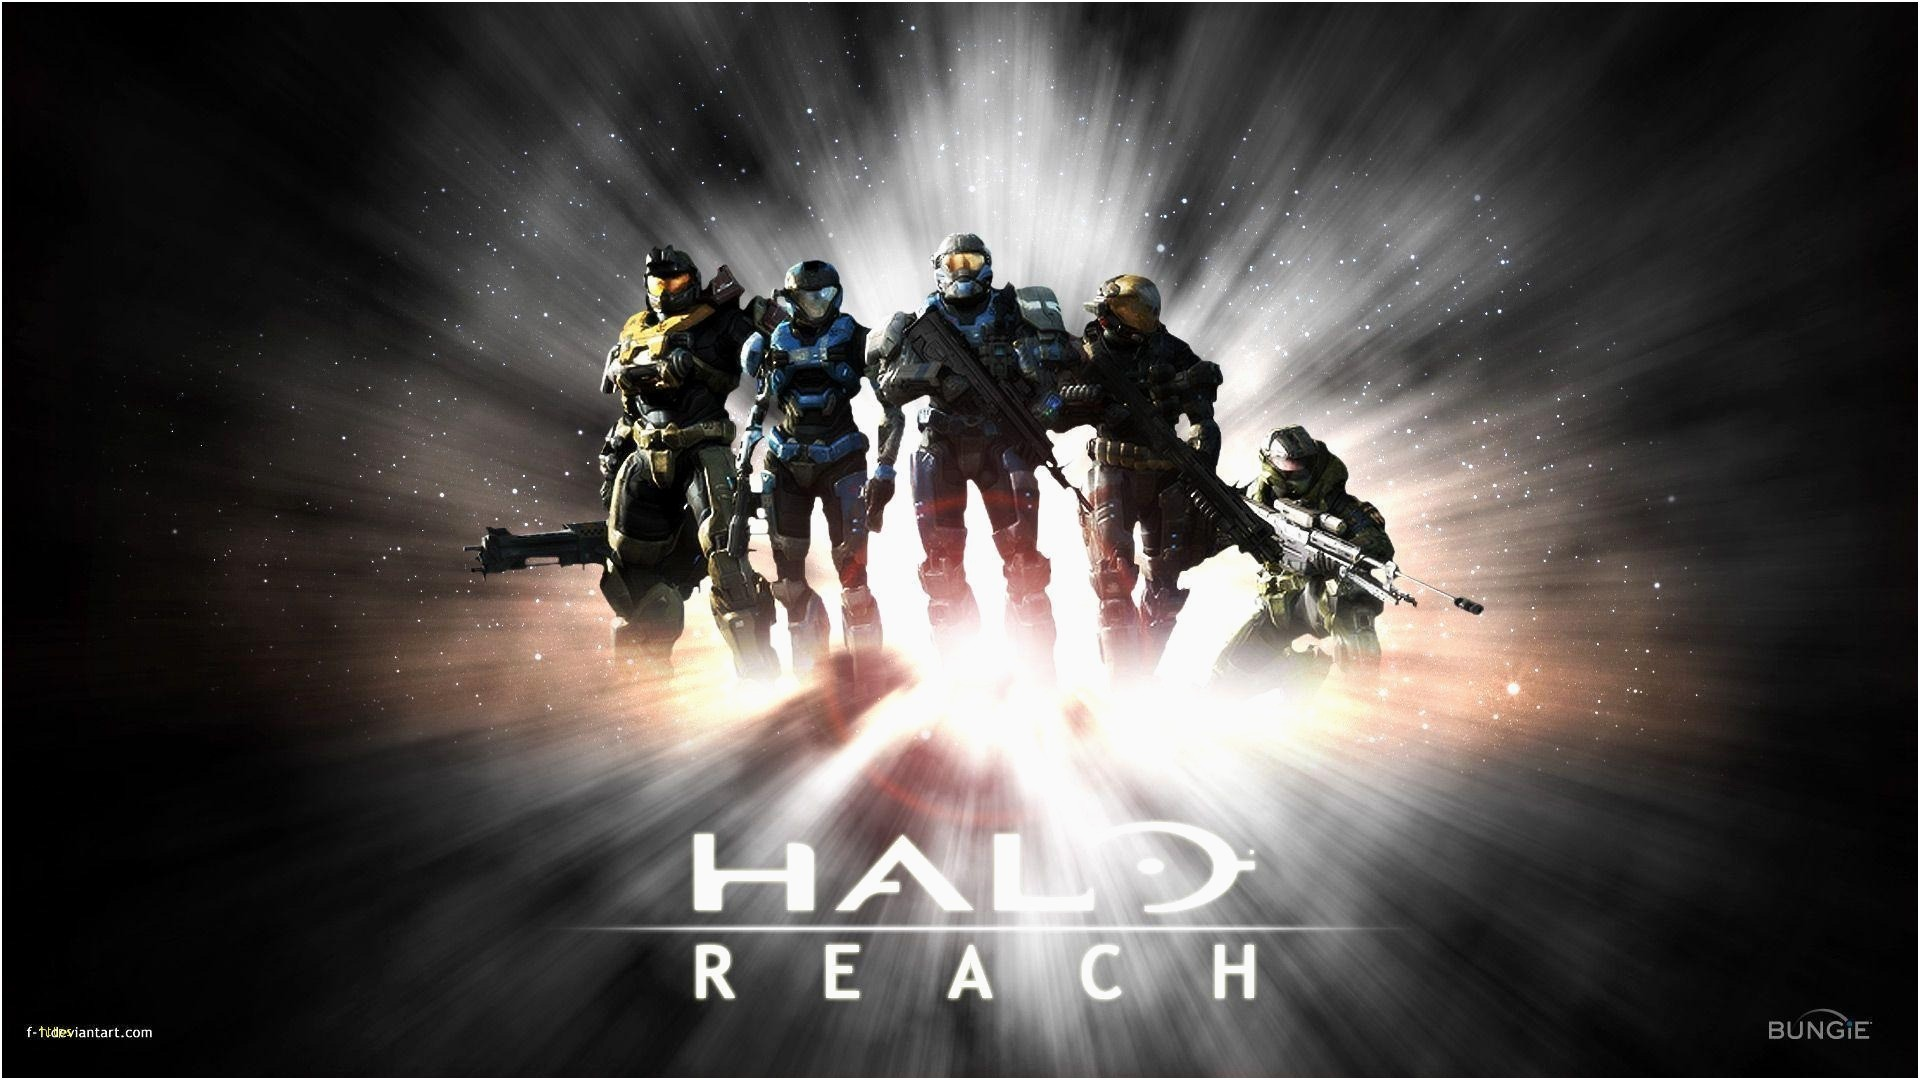 1920x1080 Halo Reach Wallpaper Luxury Halo Reach Backgrounds Wallpaper Cave